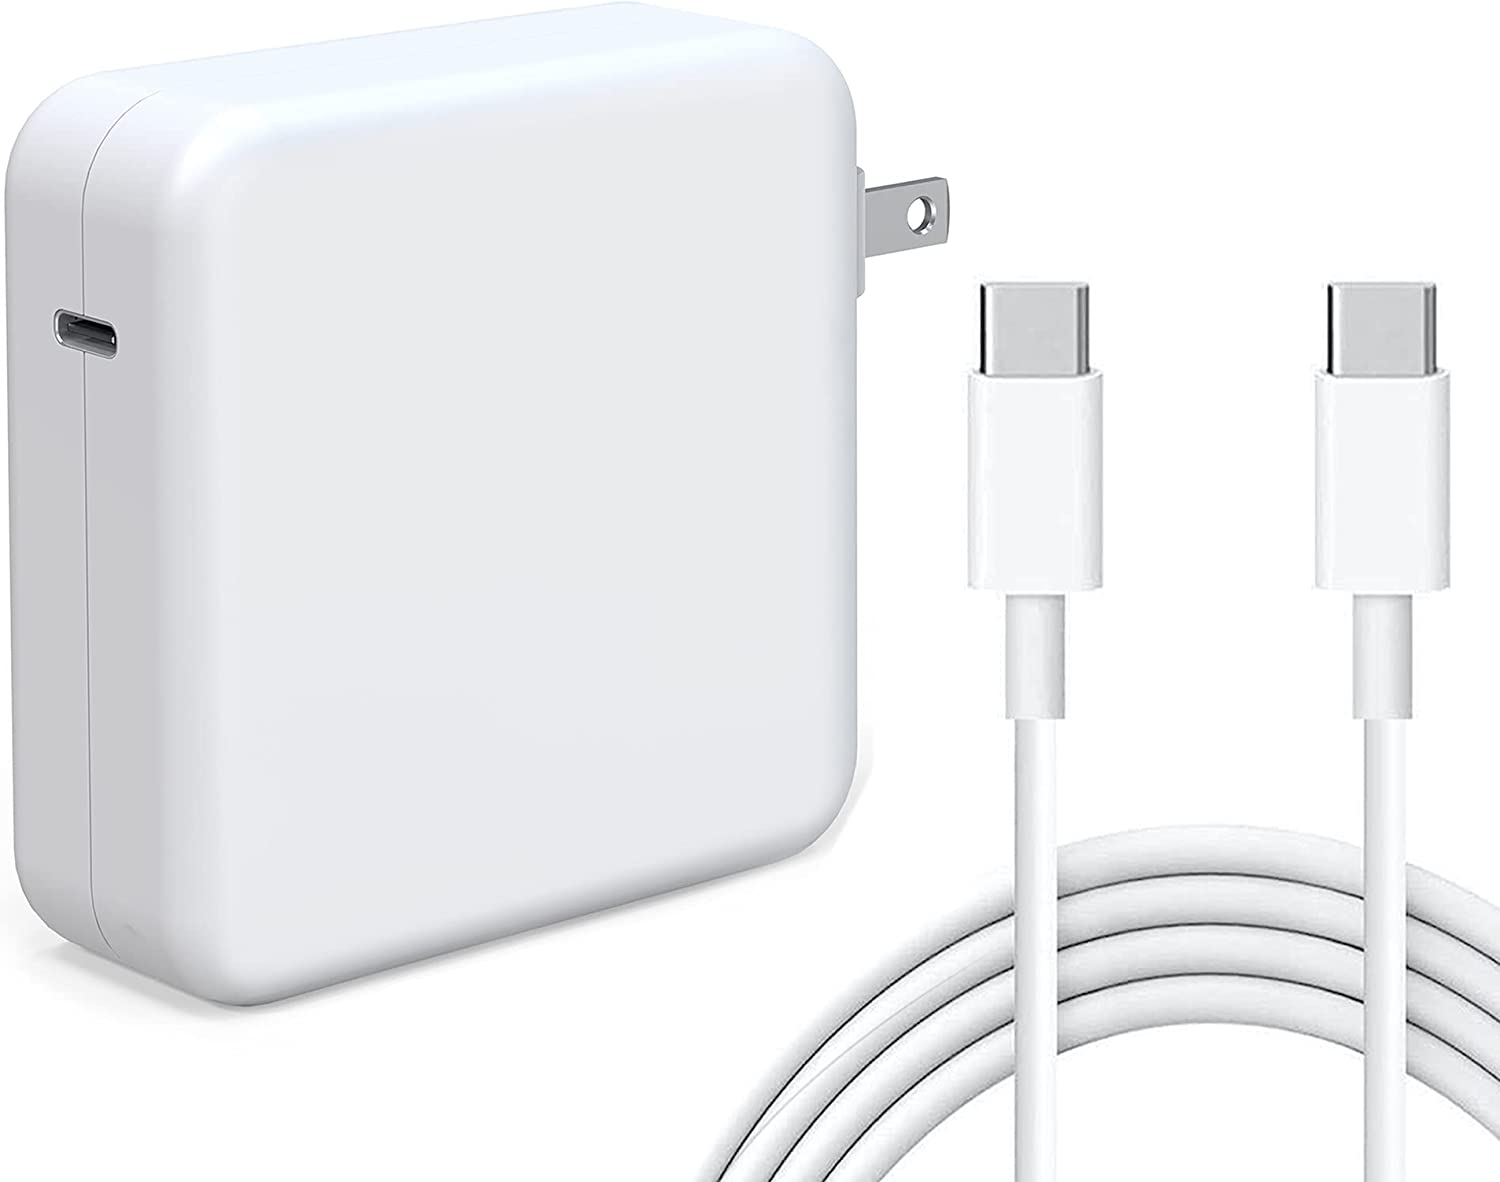 Tissyee 87W USB C Power Adapter, Compatible with MacBook Pro Charger 13 15 16 inch 2020 2019 2018 Works with USB C 87W 61W PD Power Charger, Included USB-C to USB-C Charge Cable (6.6ft/2m)